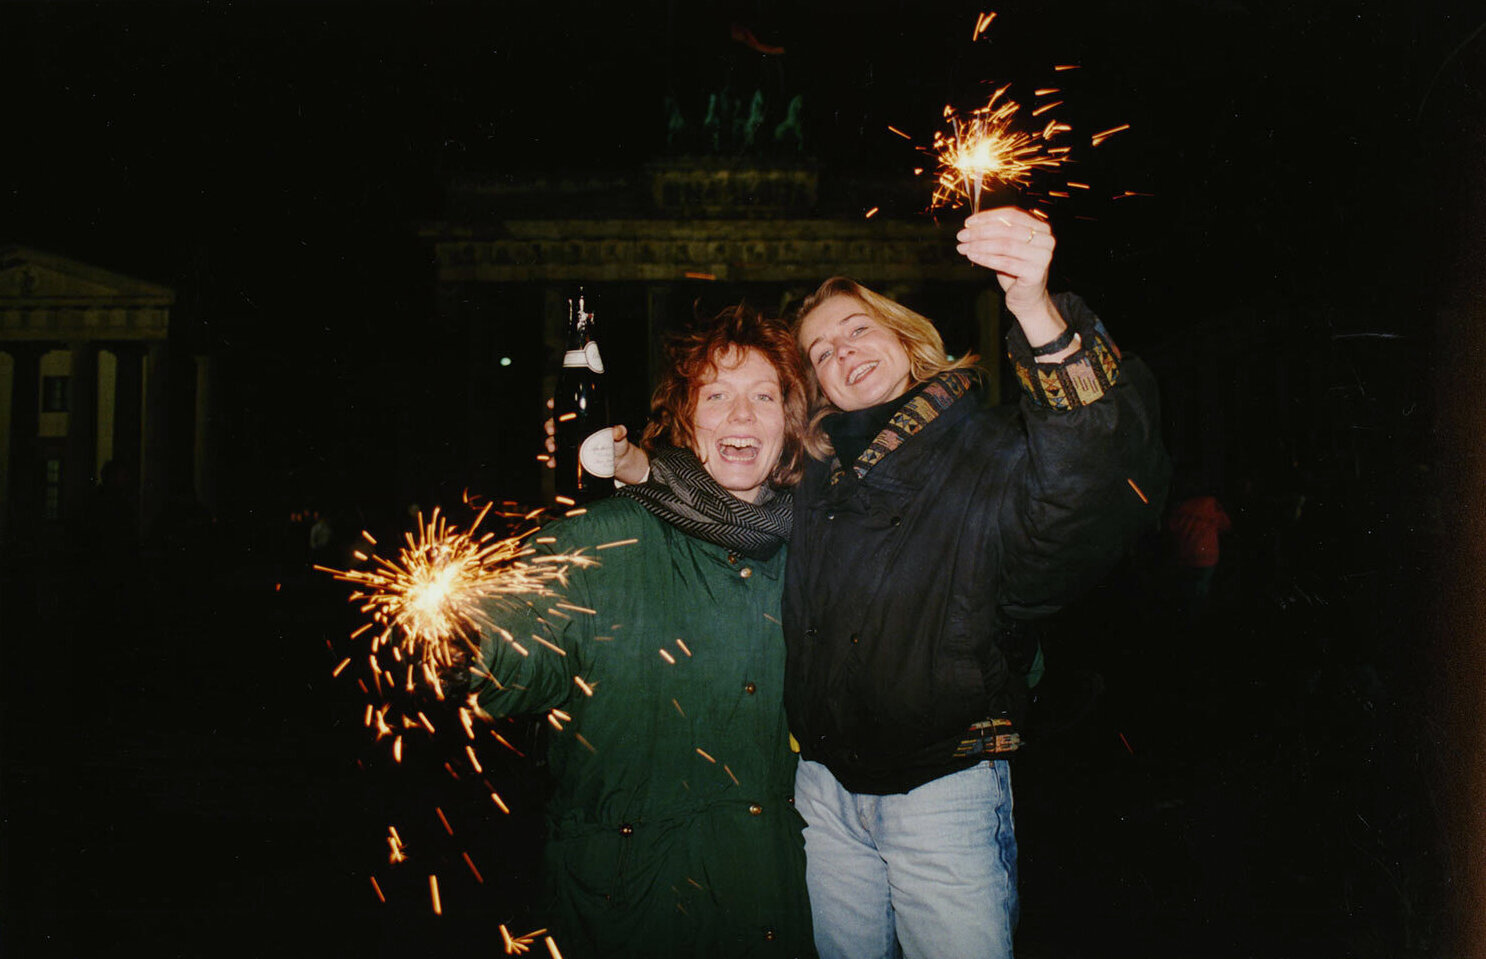 Kirsten, right, and Uta, left, from West Germany hold sparklers and a bottle of champagne as they wait on the New Year at the Brandenberg Gate, Dec. 31, 1989. Thousands of of visitors from East and West Germany will meet for a joint New Year's celebration. (AP Photo/Roland Melbrauch)